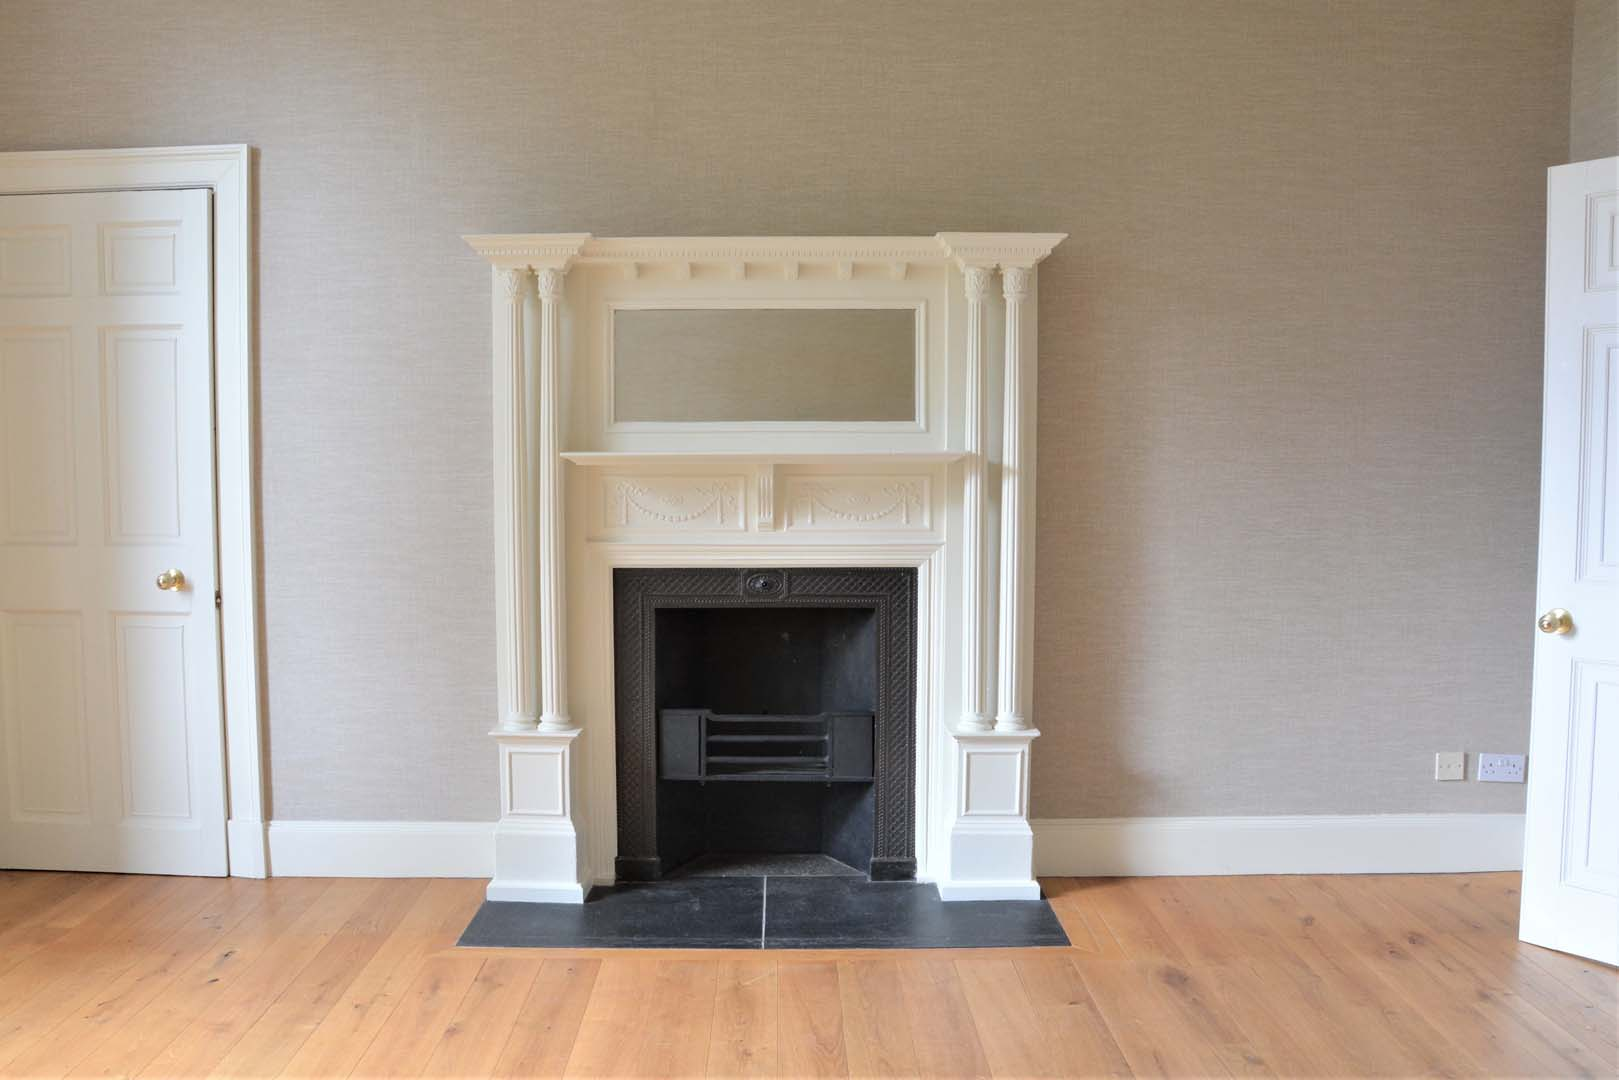 Georgian House image of fireplace in sitting room after restoration